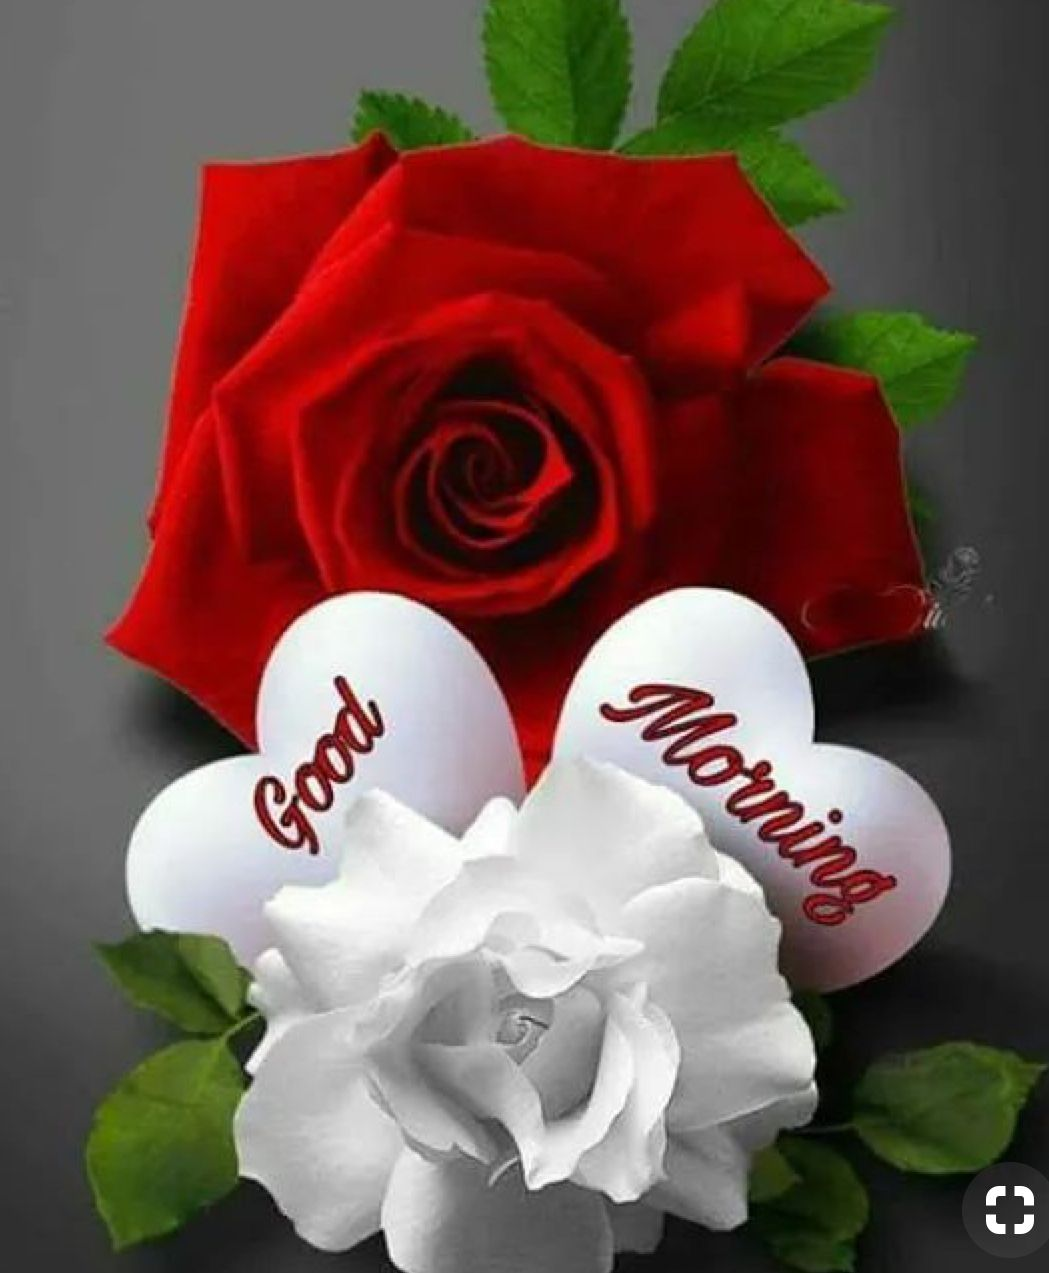 Good Morning Sister Have A Great Day Good Morning Flowers Good Morning Beautiful Flowers Good Morning Happy Sunday